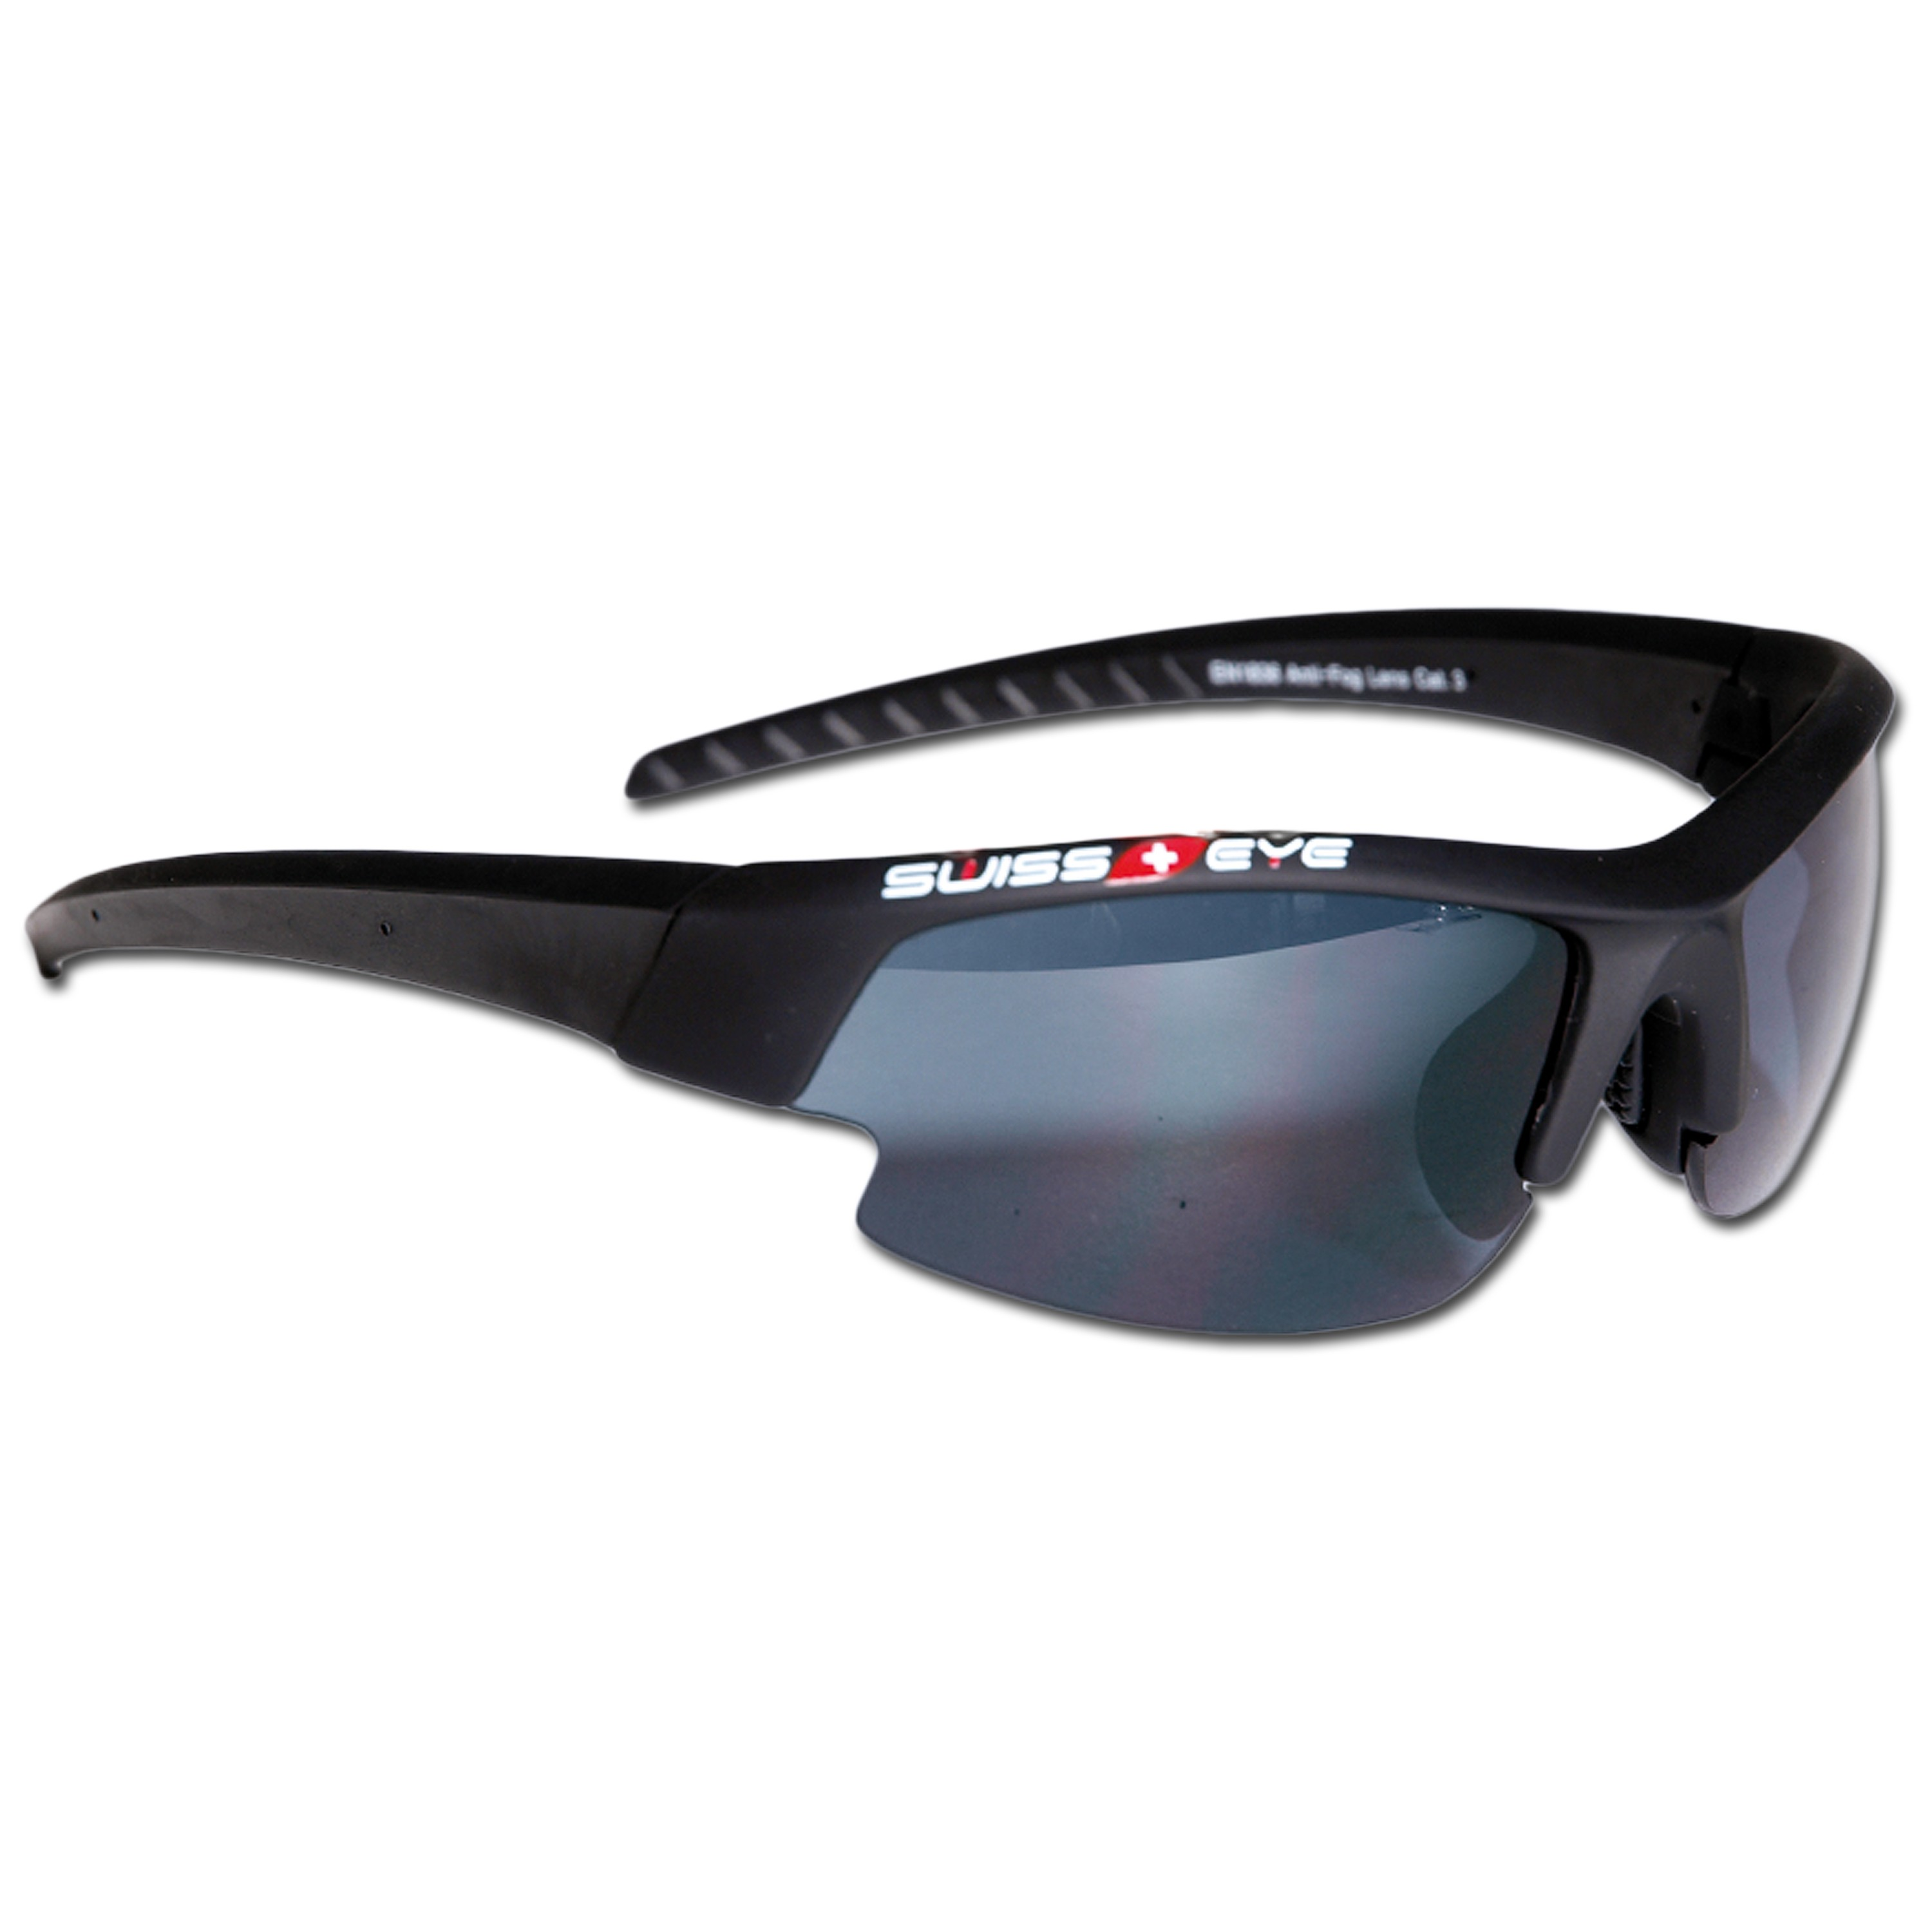 Brille Swiss Eye Gardosa Evolution slim M/P